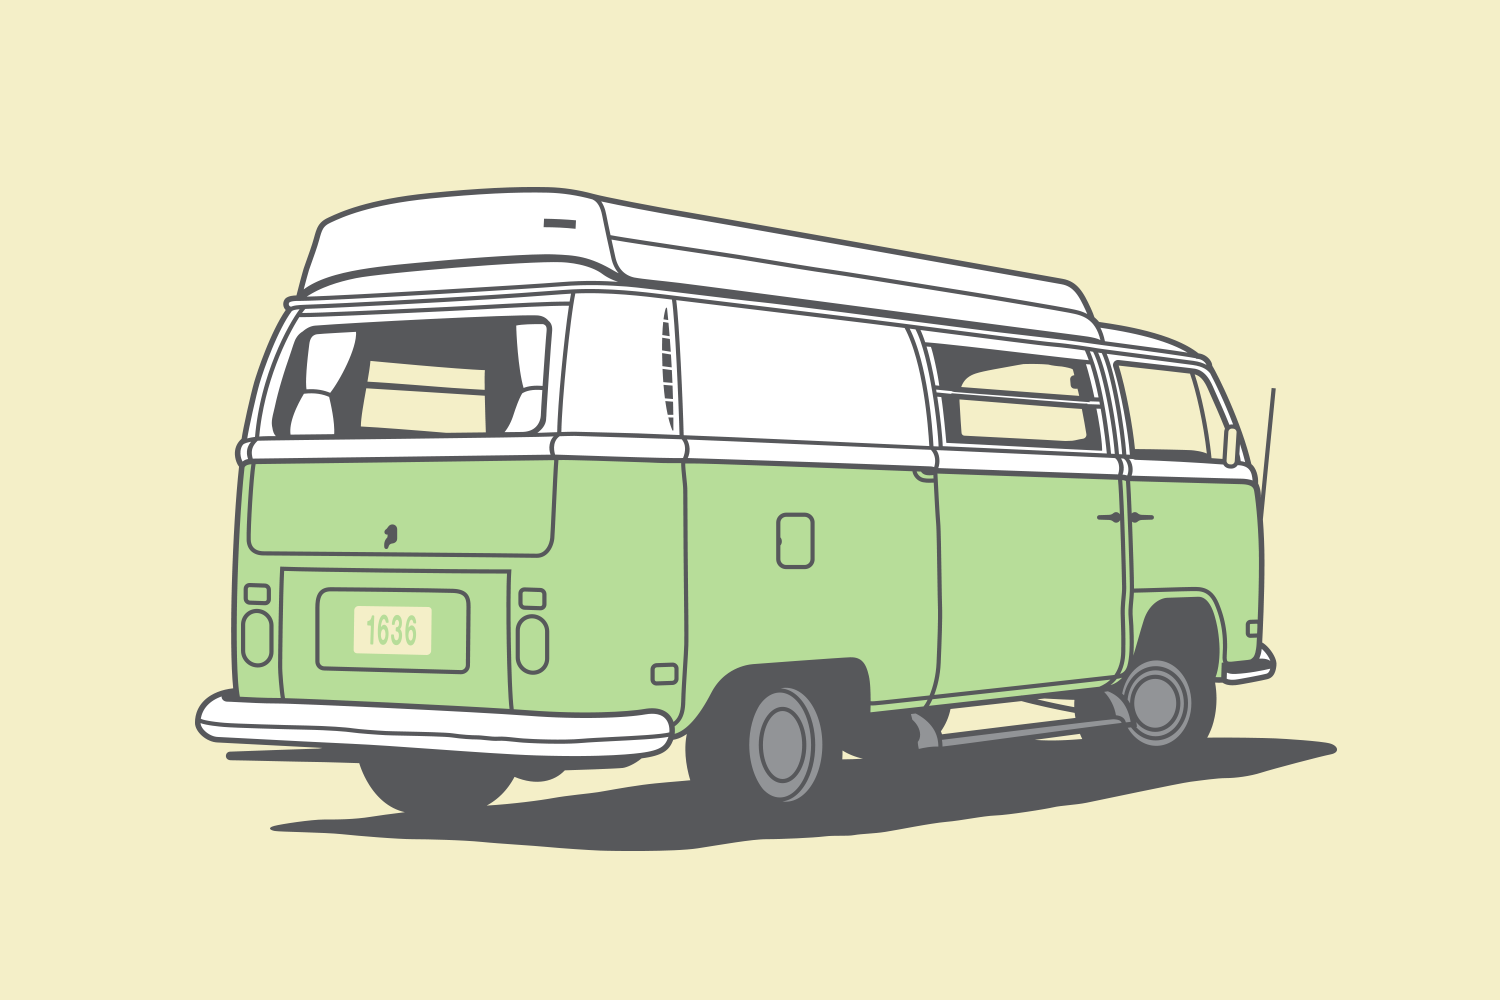 VW bus with camper top